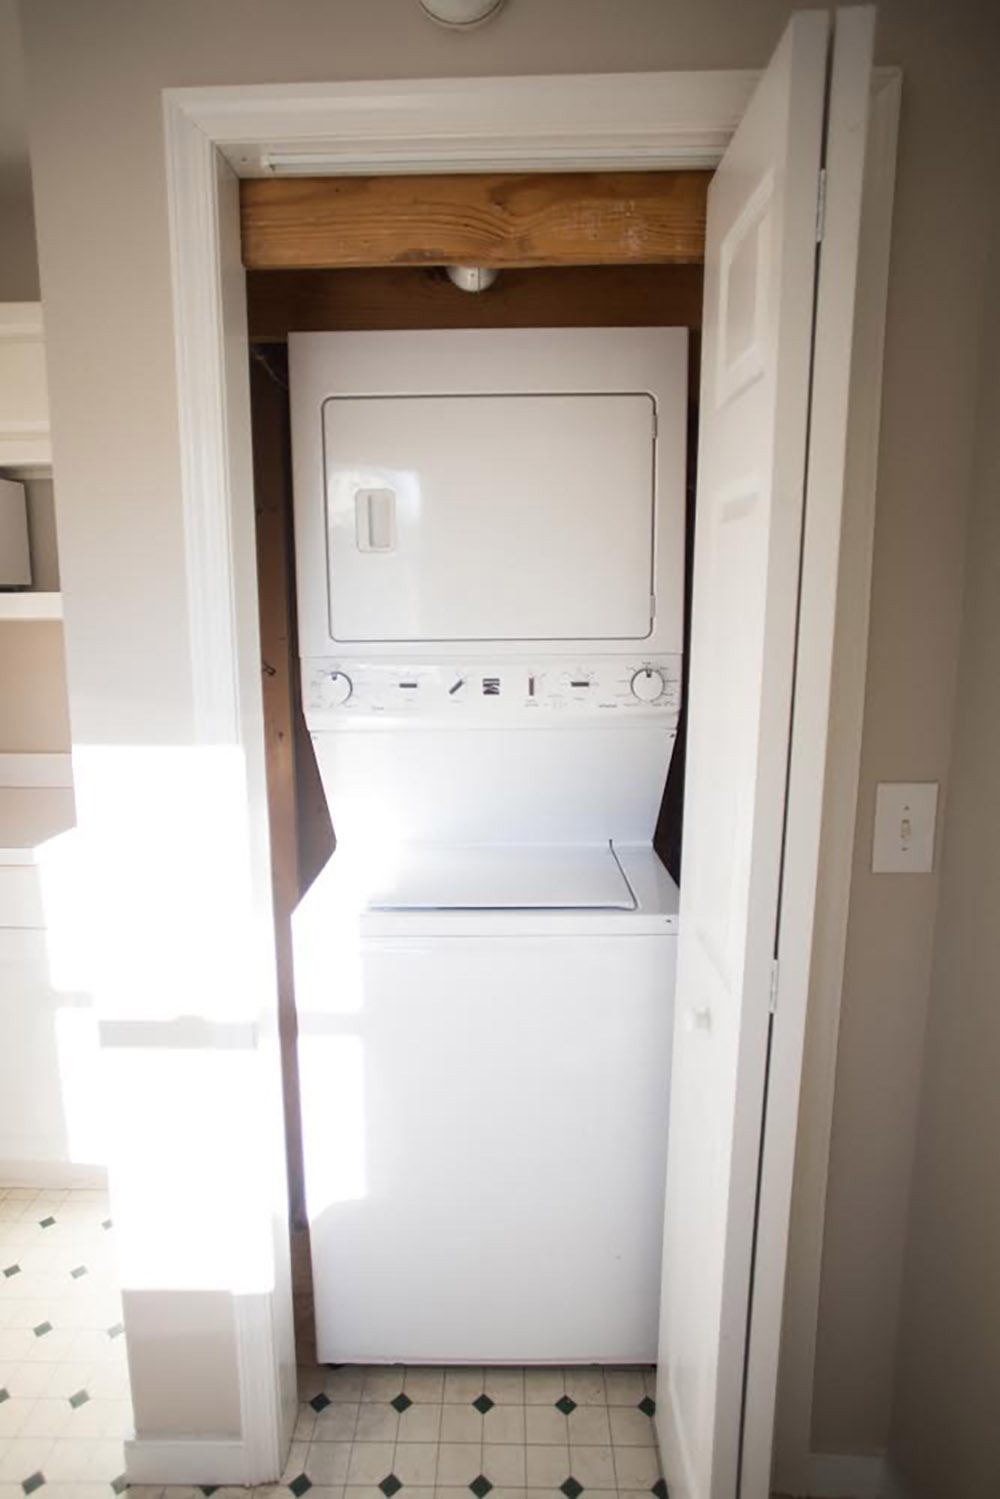 A closet with a white washer and dryer.